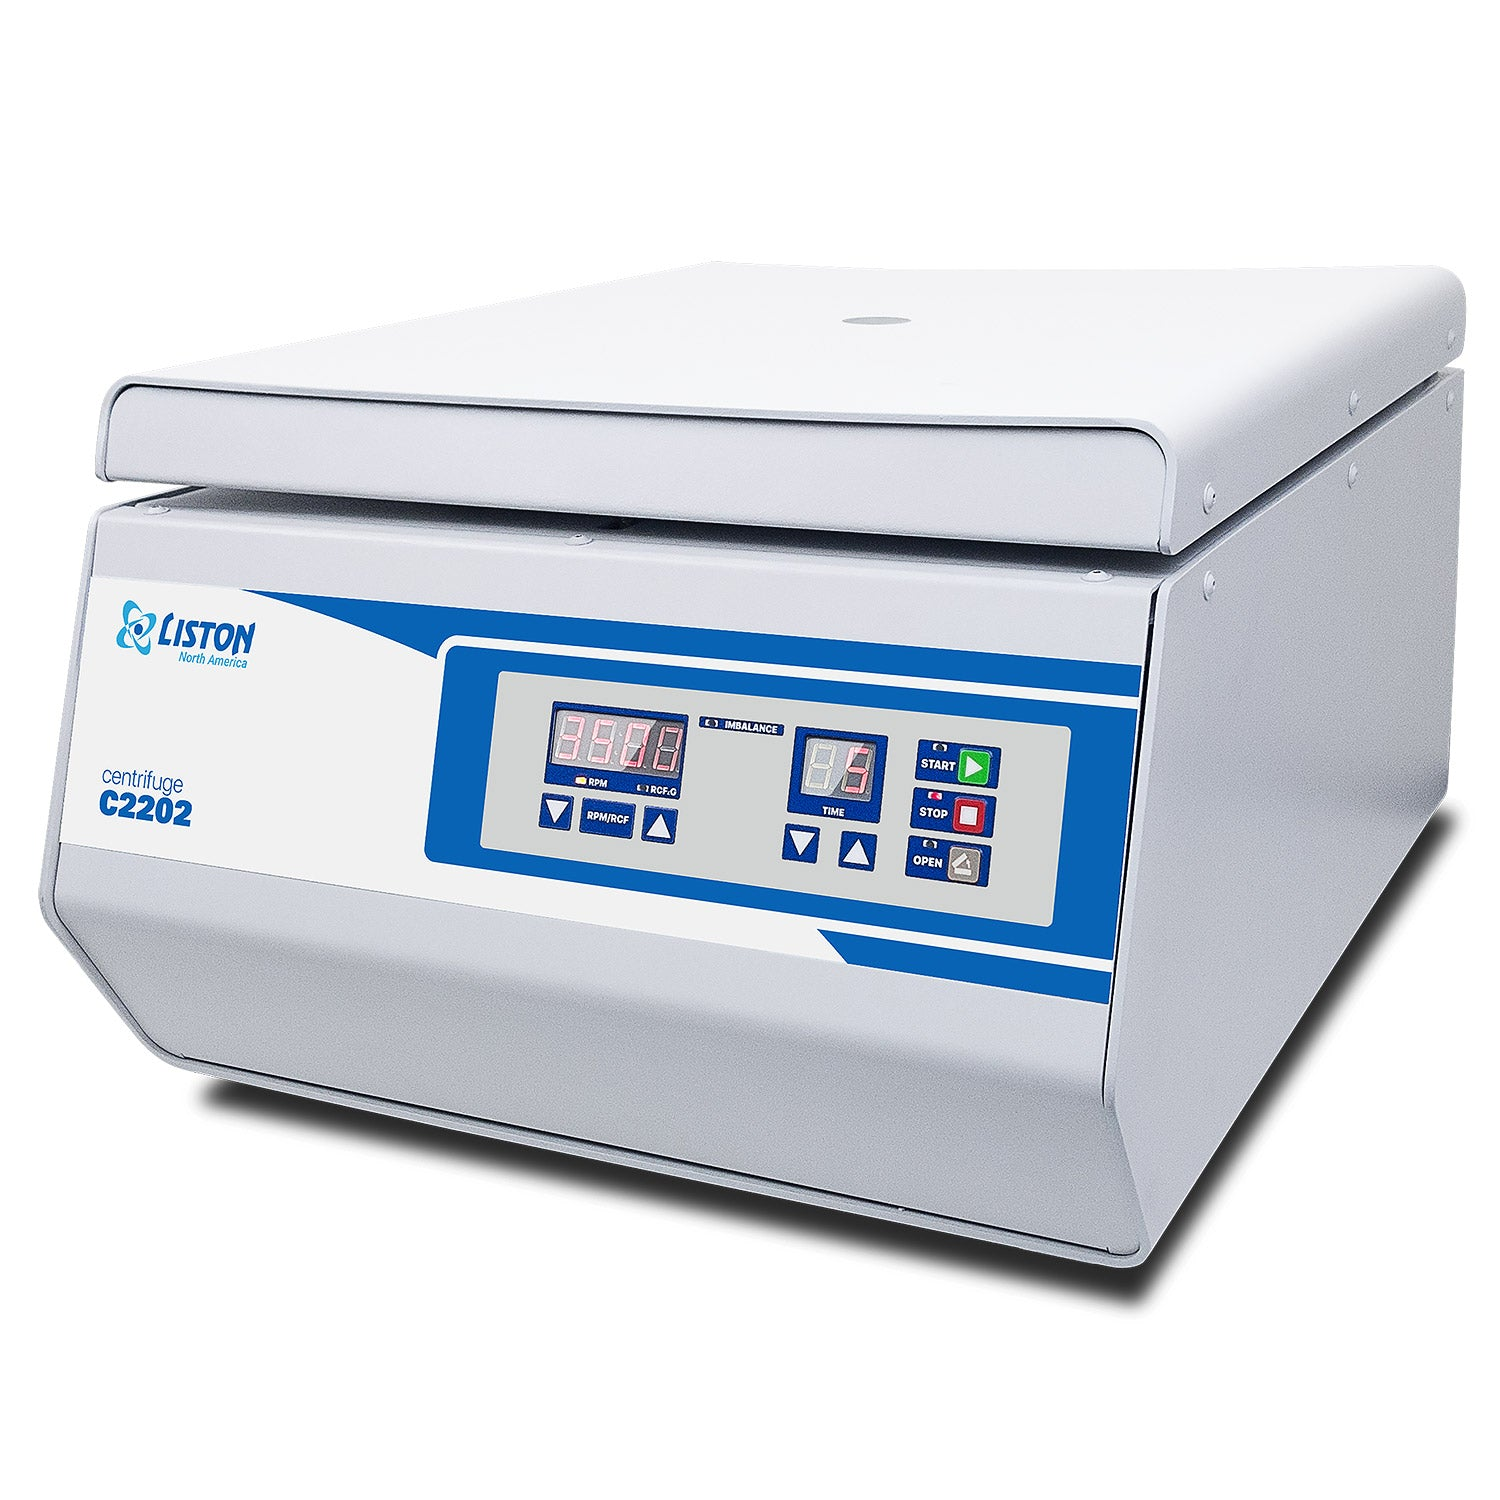 LISTON C2202 Swing-Out Benchtop Centrifuge | with Rotor Included for Clinical and Research Use